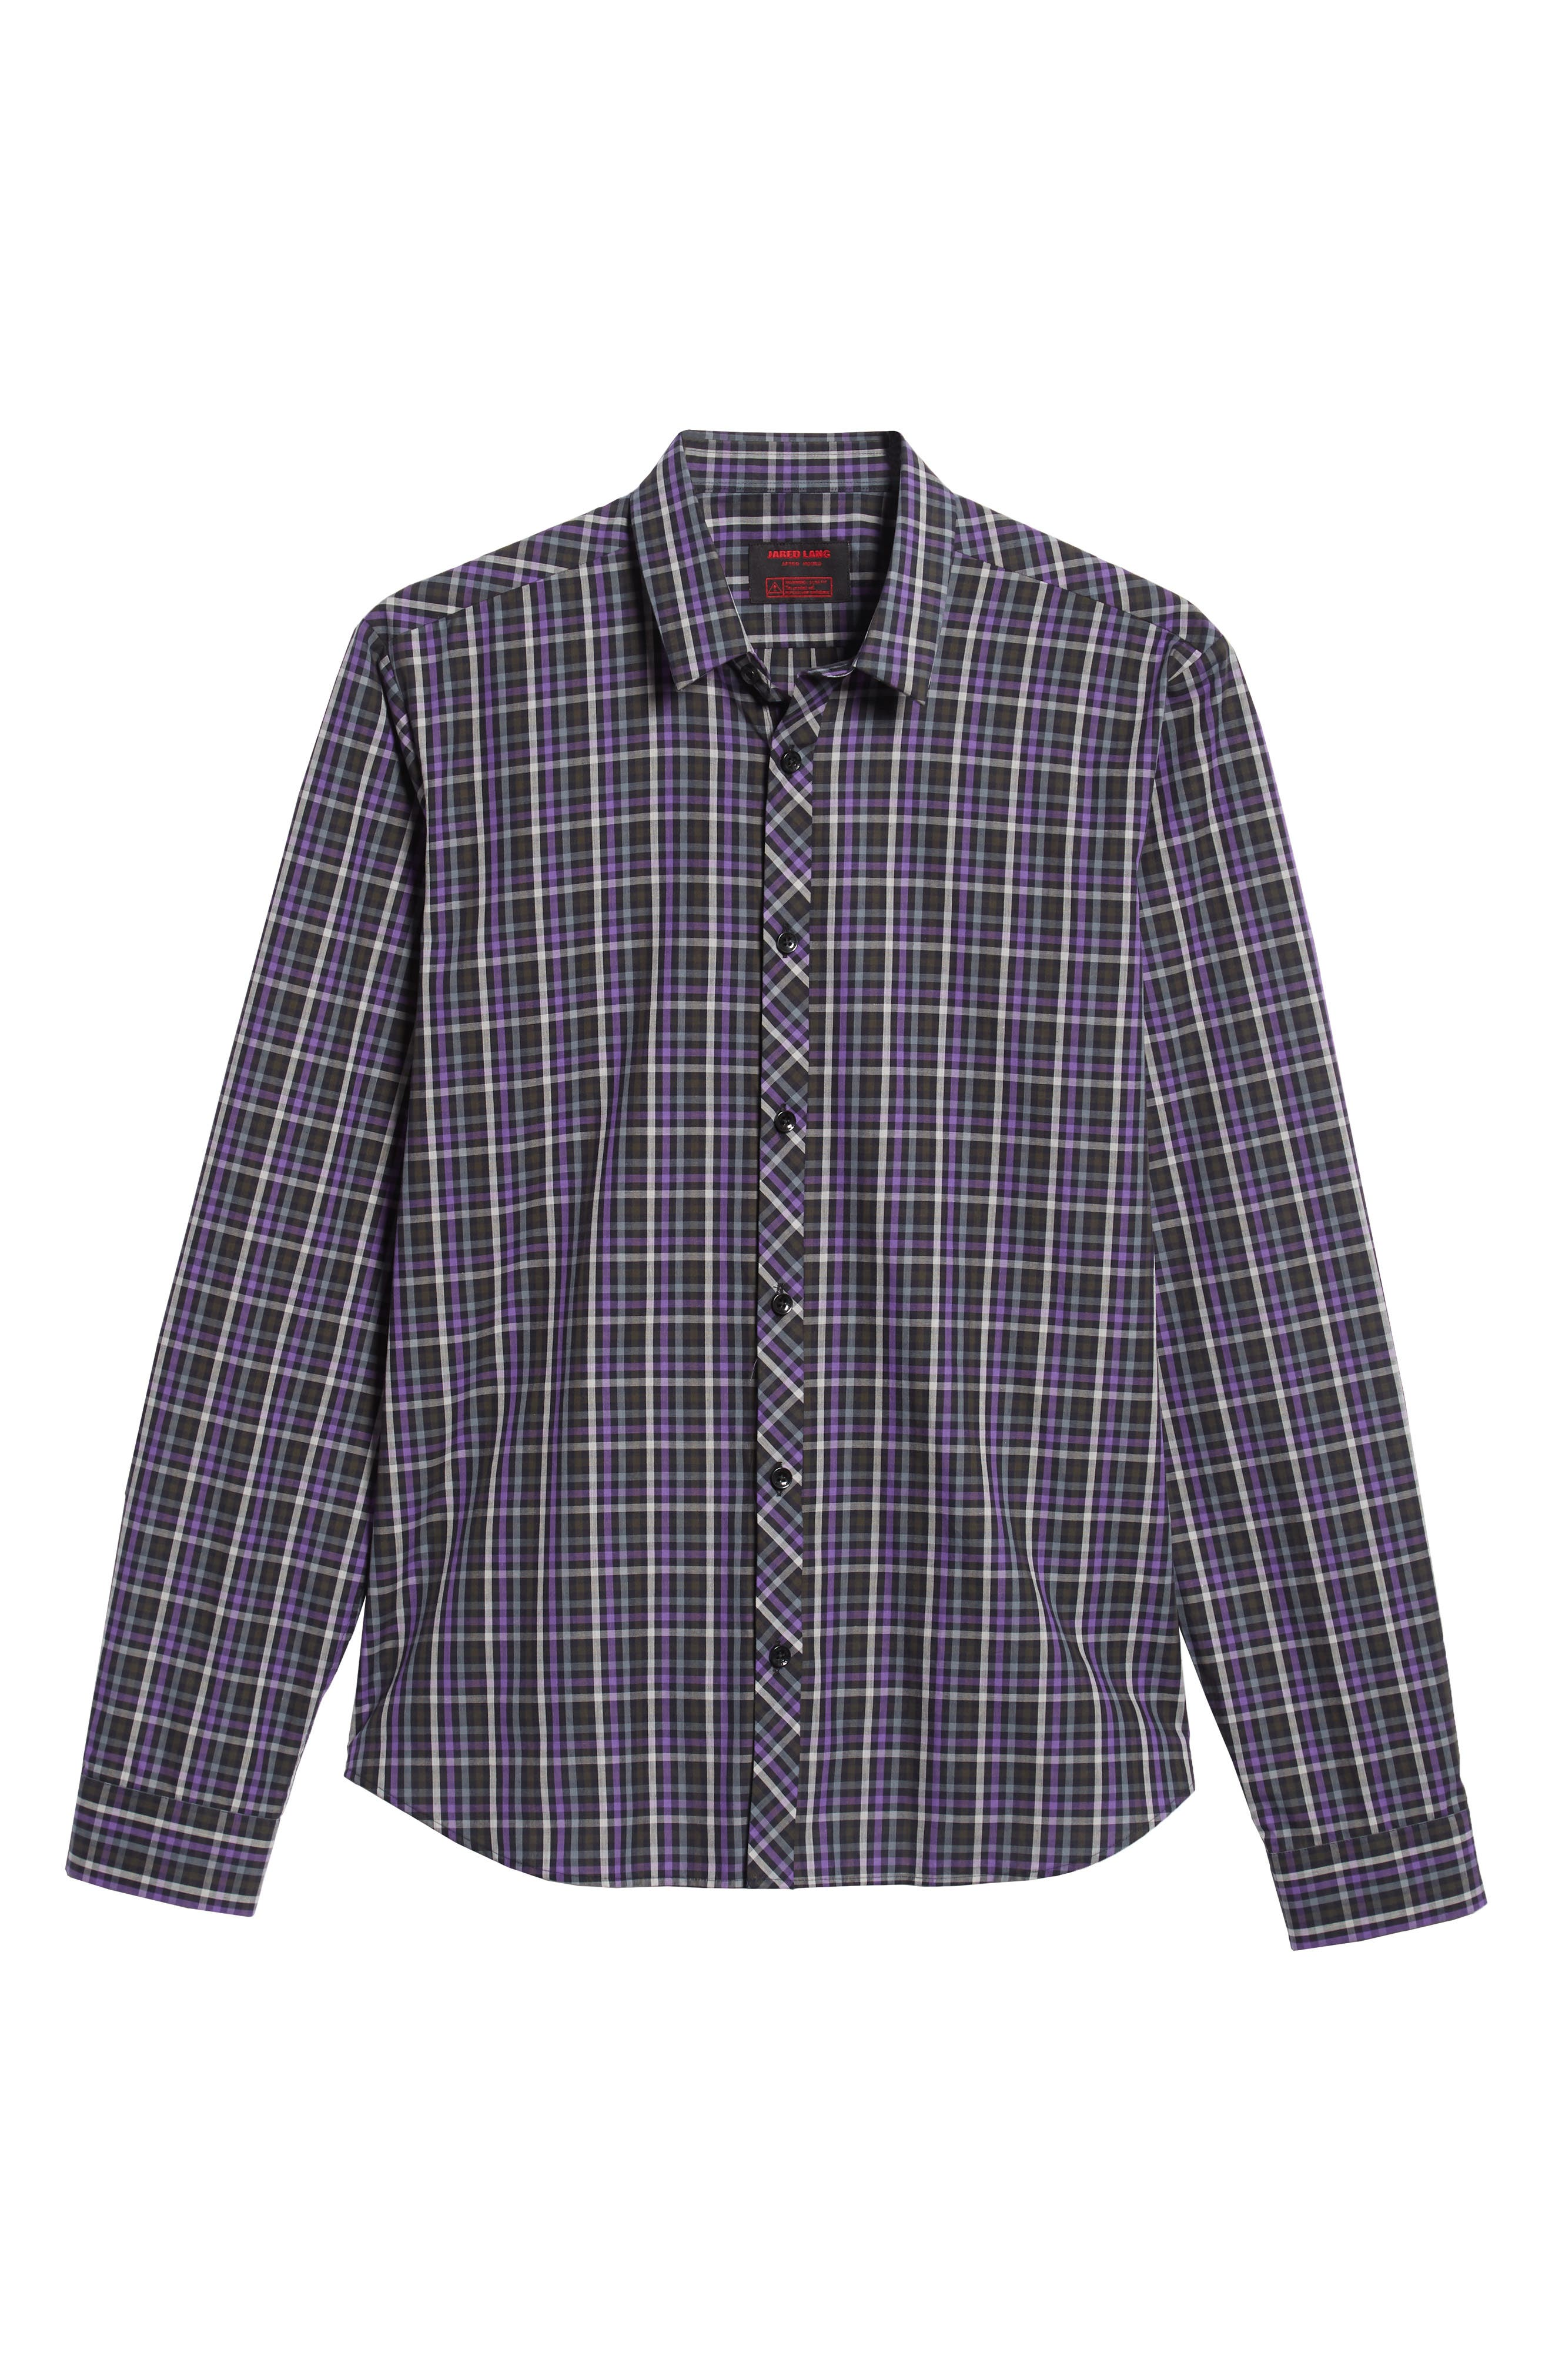 Trim Fit Sport Shirt,                             Alternate thumbnail 5, color,                             PURPLE - BLACK MULTI CHECK